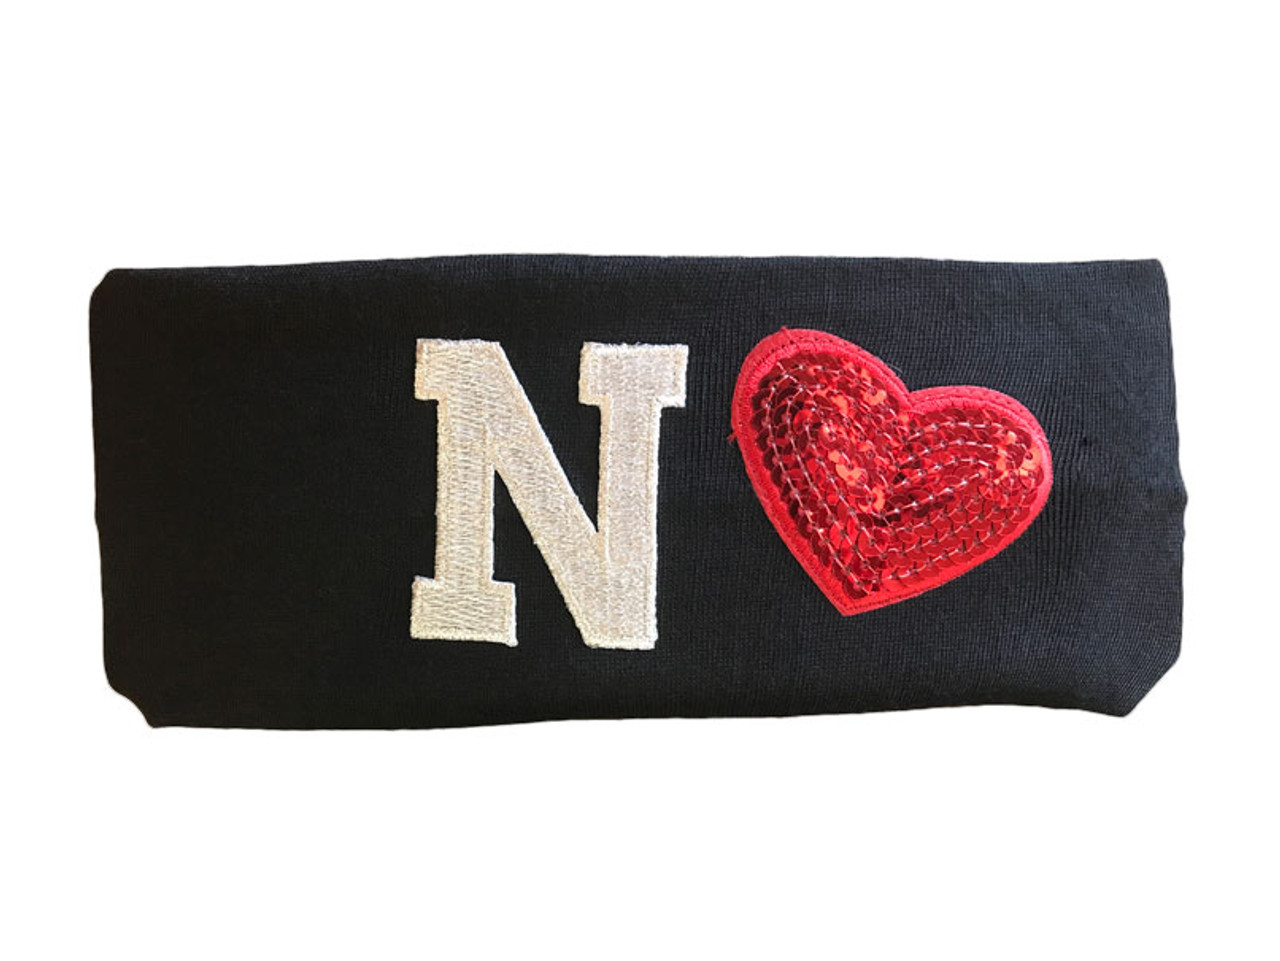 Kids Personalized Sweatband (2 Patches) 0618306f3a9